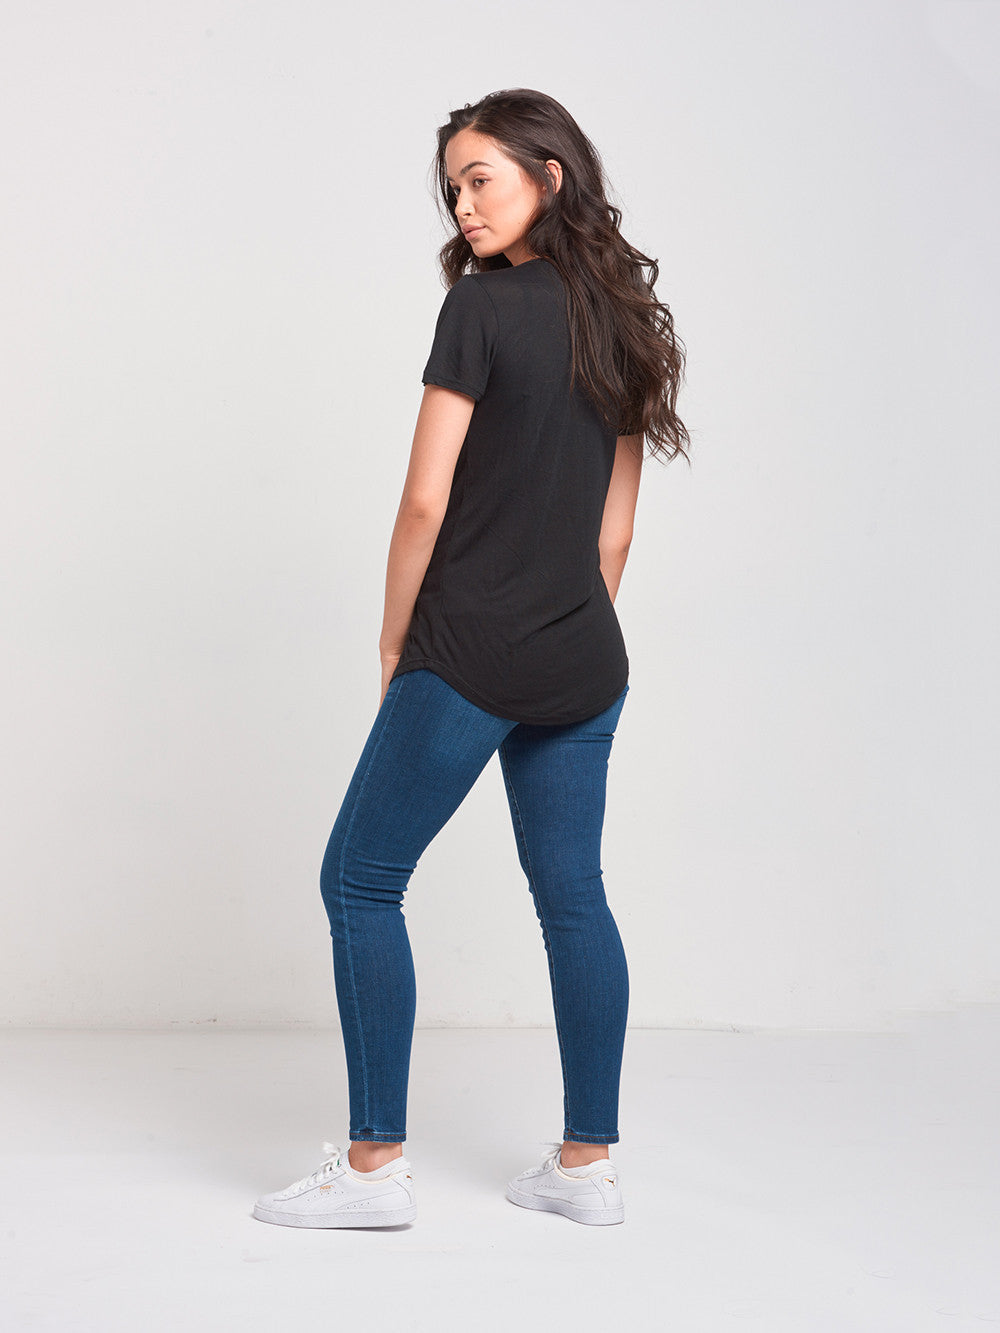 Reckless Girls Womens - Tops - Tees Reckless Native Scoop Neck Tee- Black